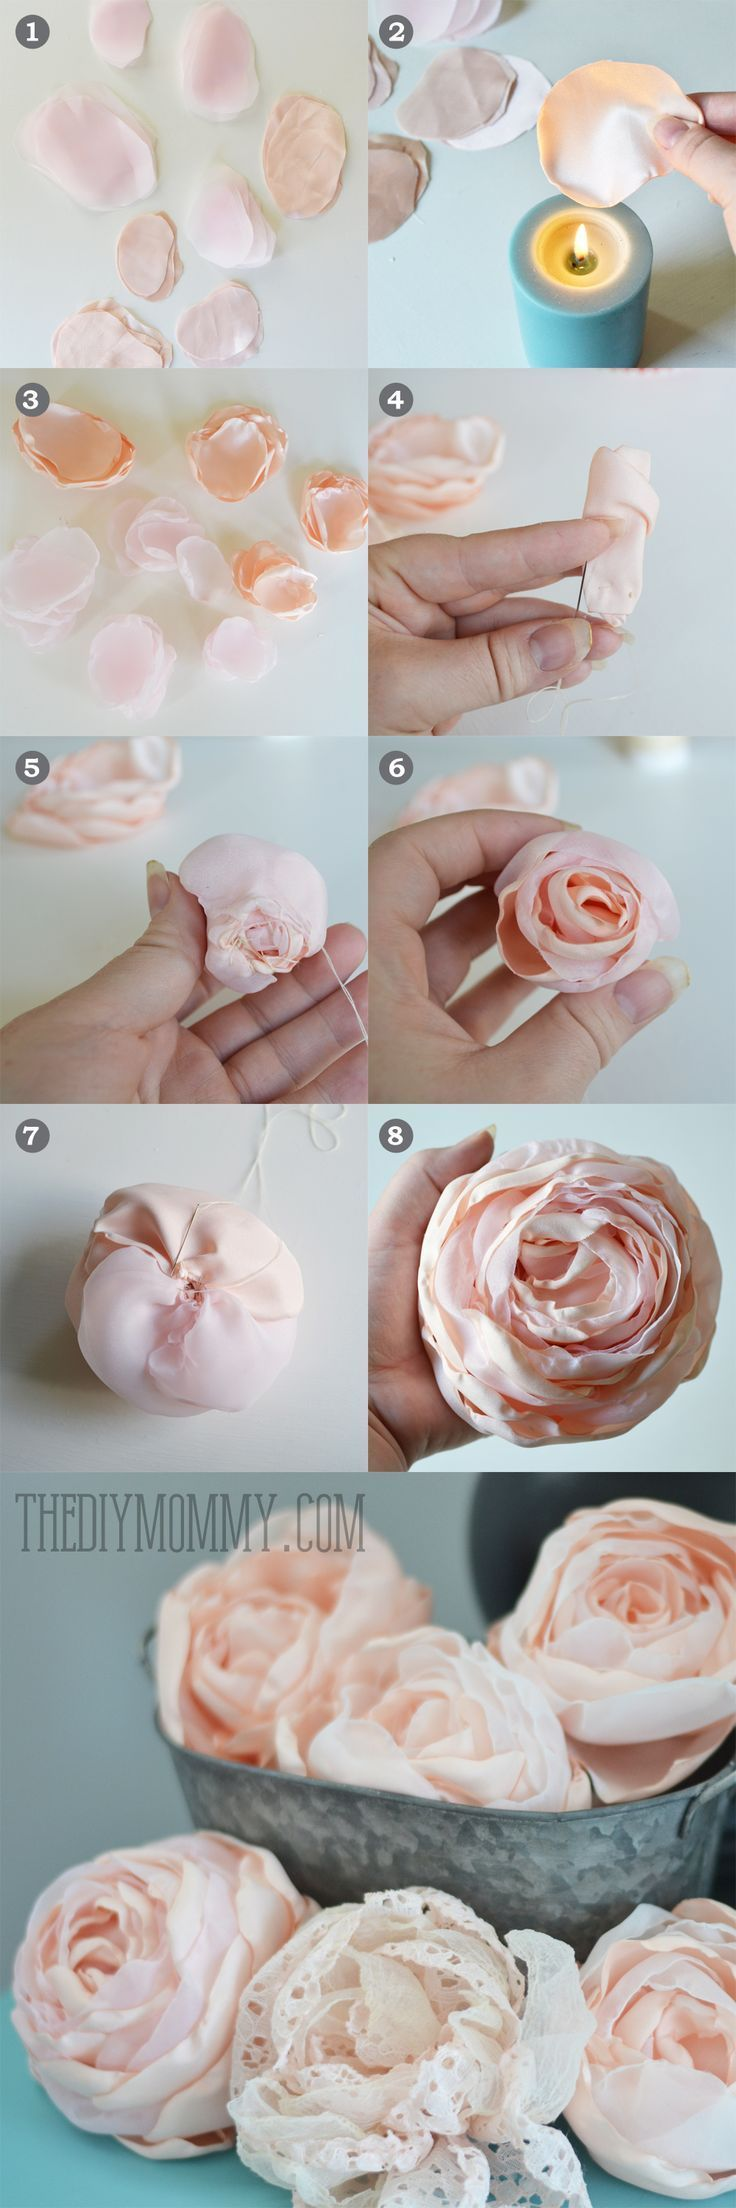 DIY Paper Flowers • Tutorials for easy and elegant paper flower projects, like these DIY peonies and cabbage roses